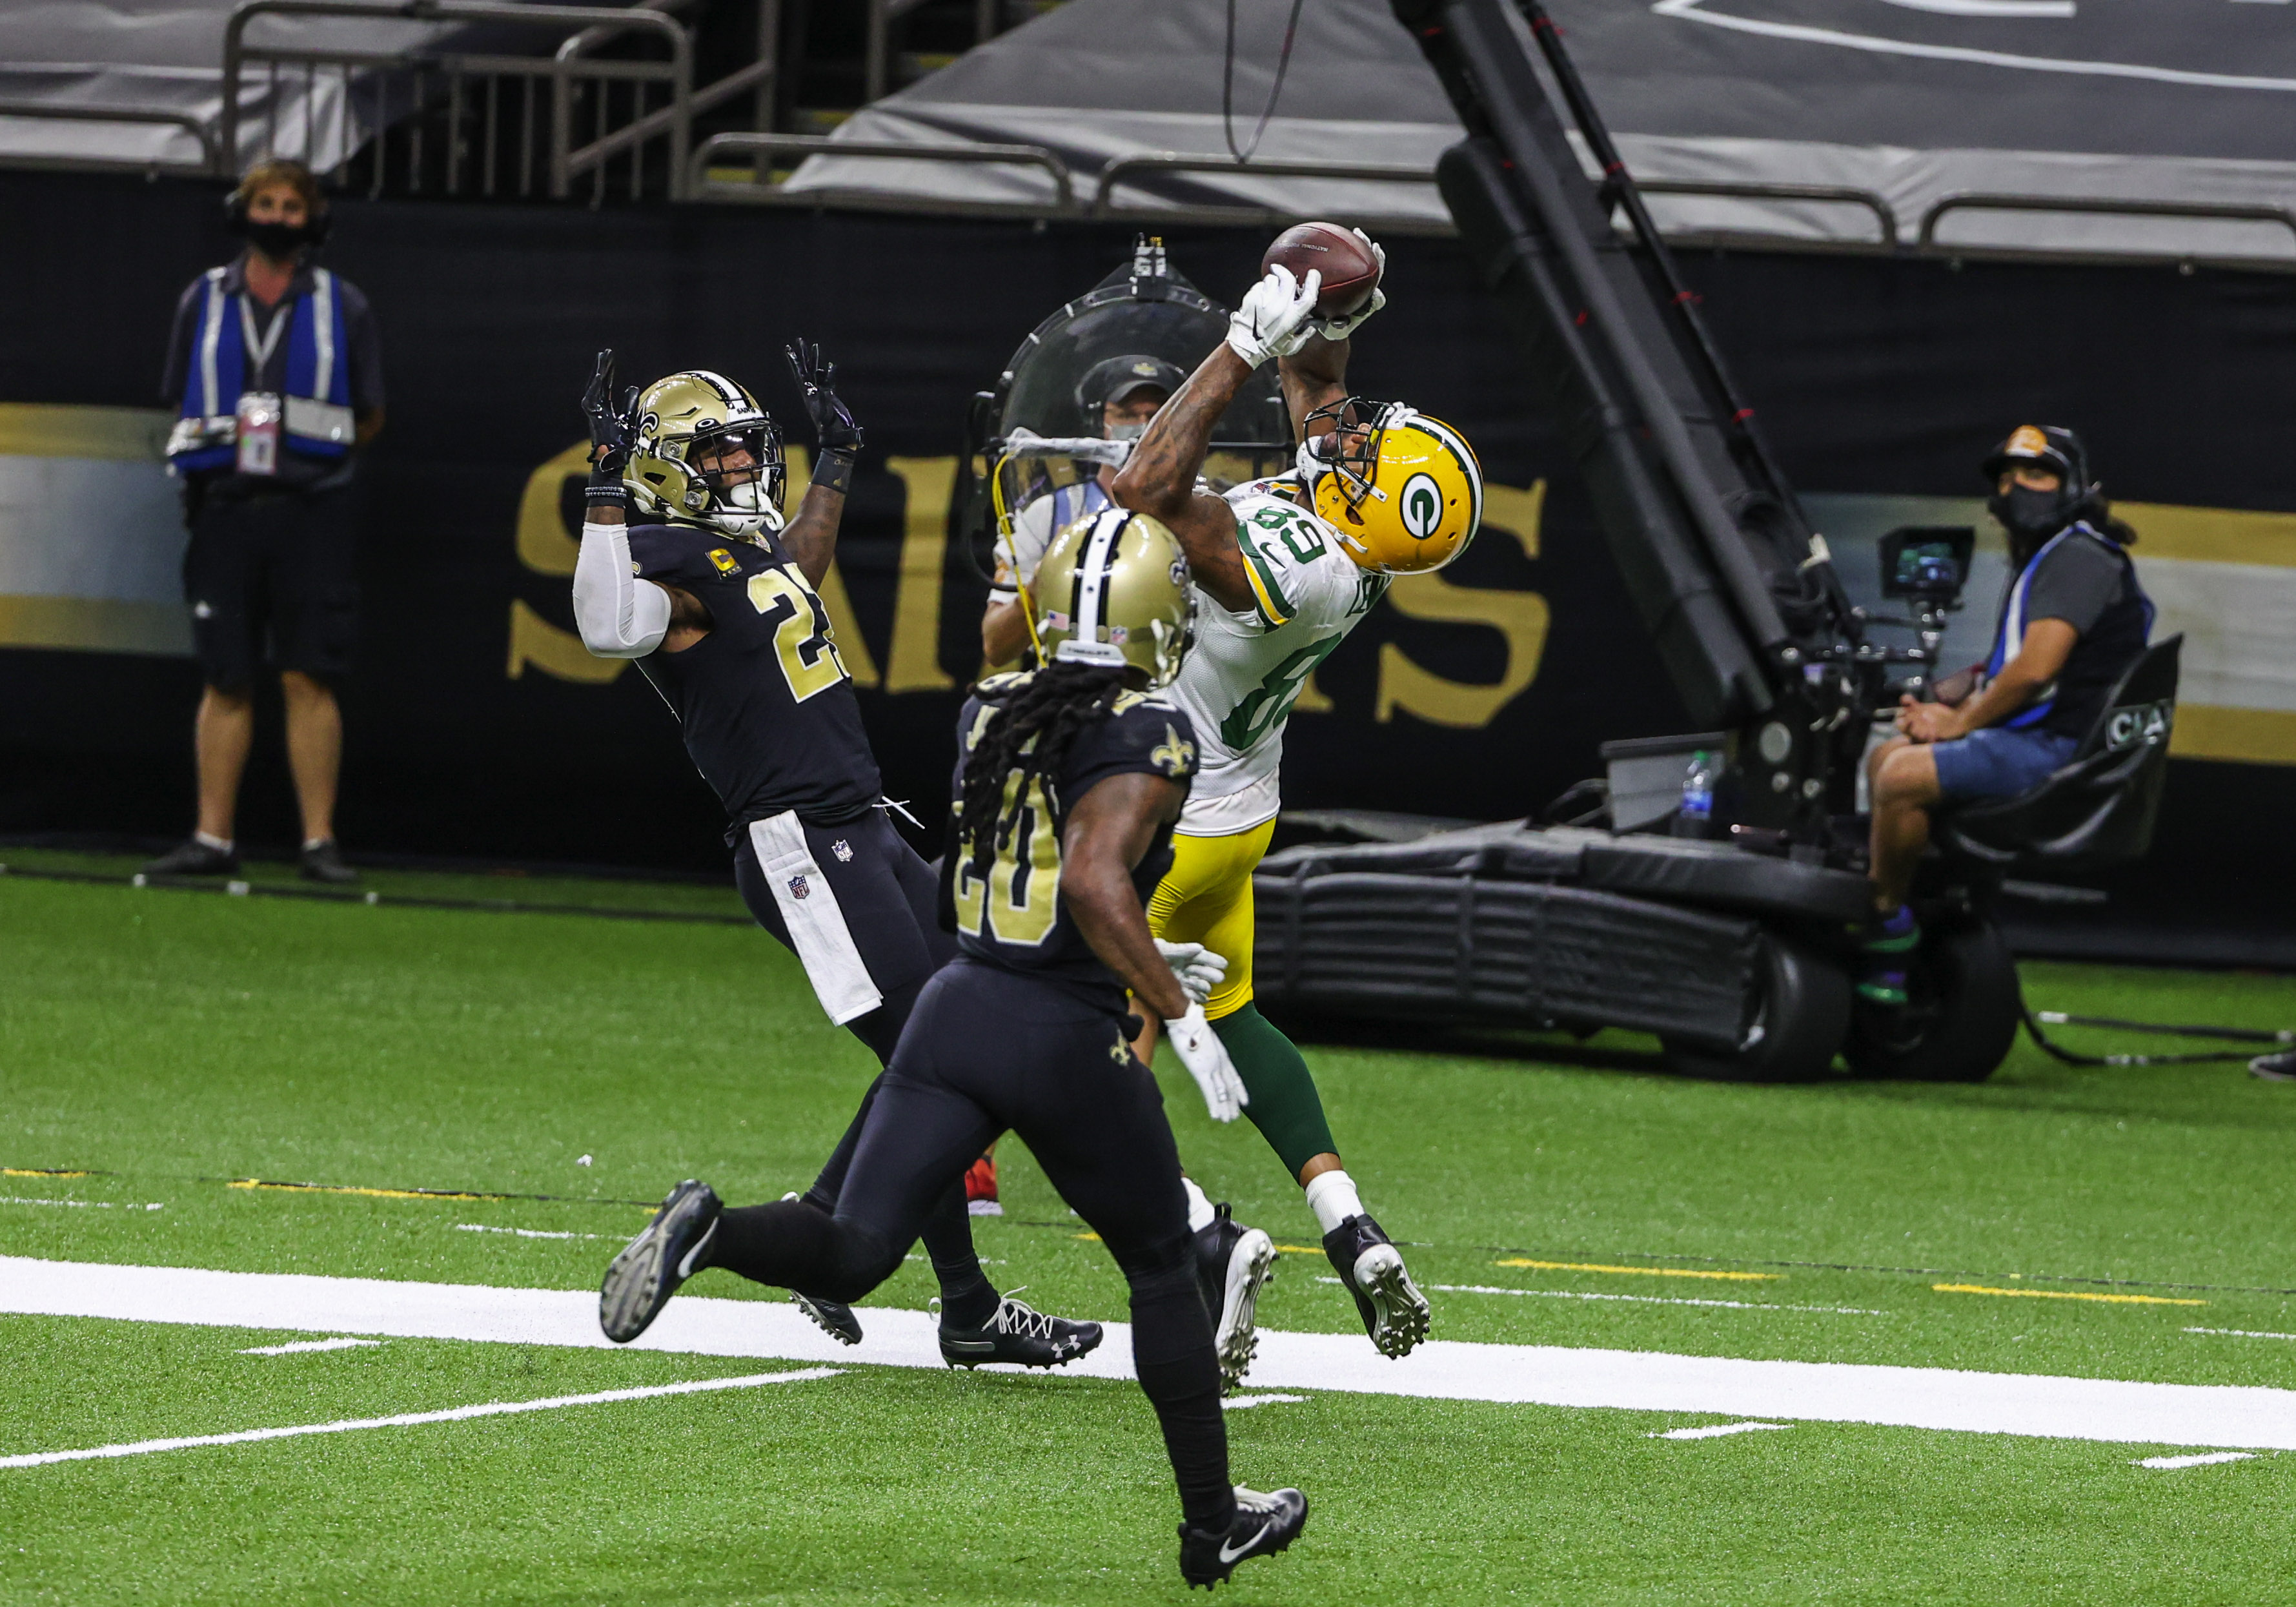 NFL: Green Bay Packers at New Orleans Saints